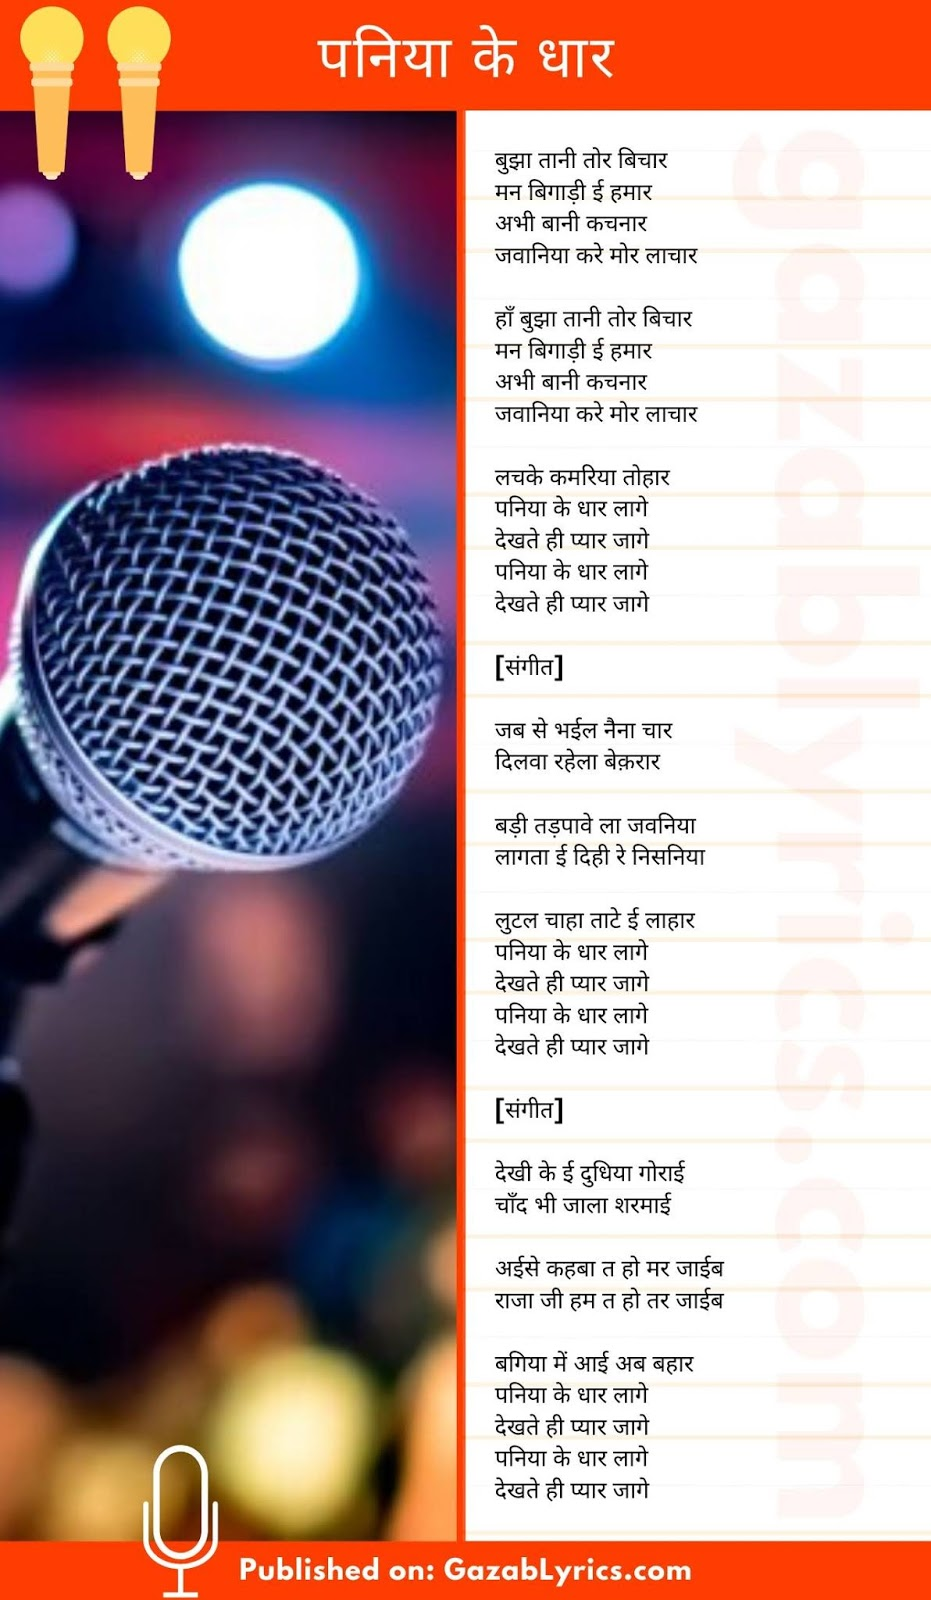 Paniya Ke Dhaar song lyrics image